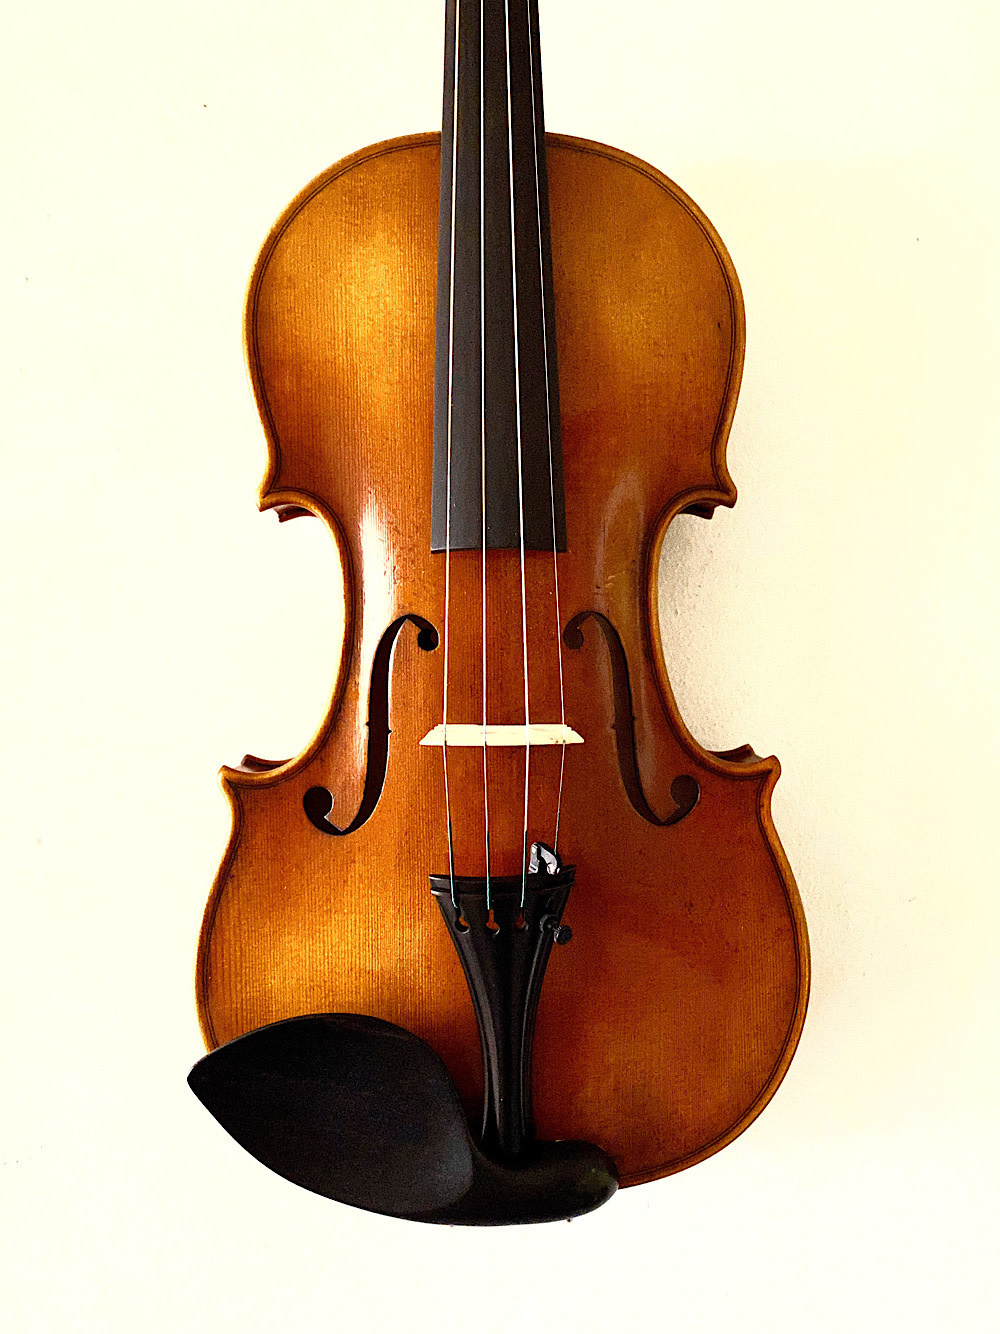 Thomas Hoyer Werkstatt Meister violin, Bergonzi model, 2017, No. 4, GERMANY